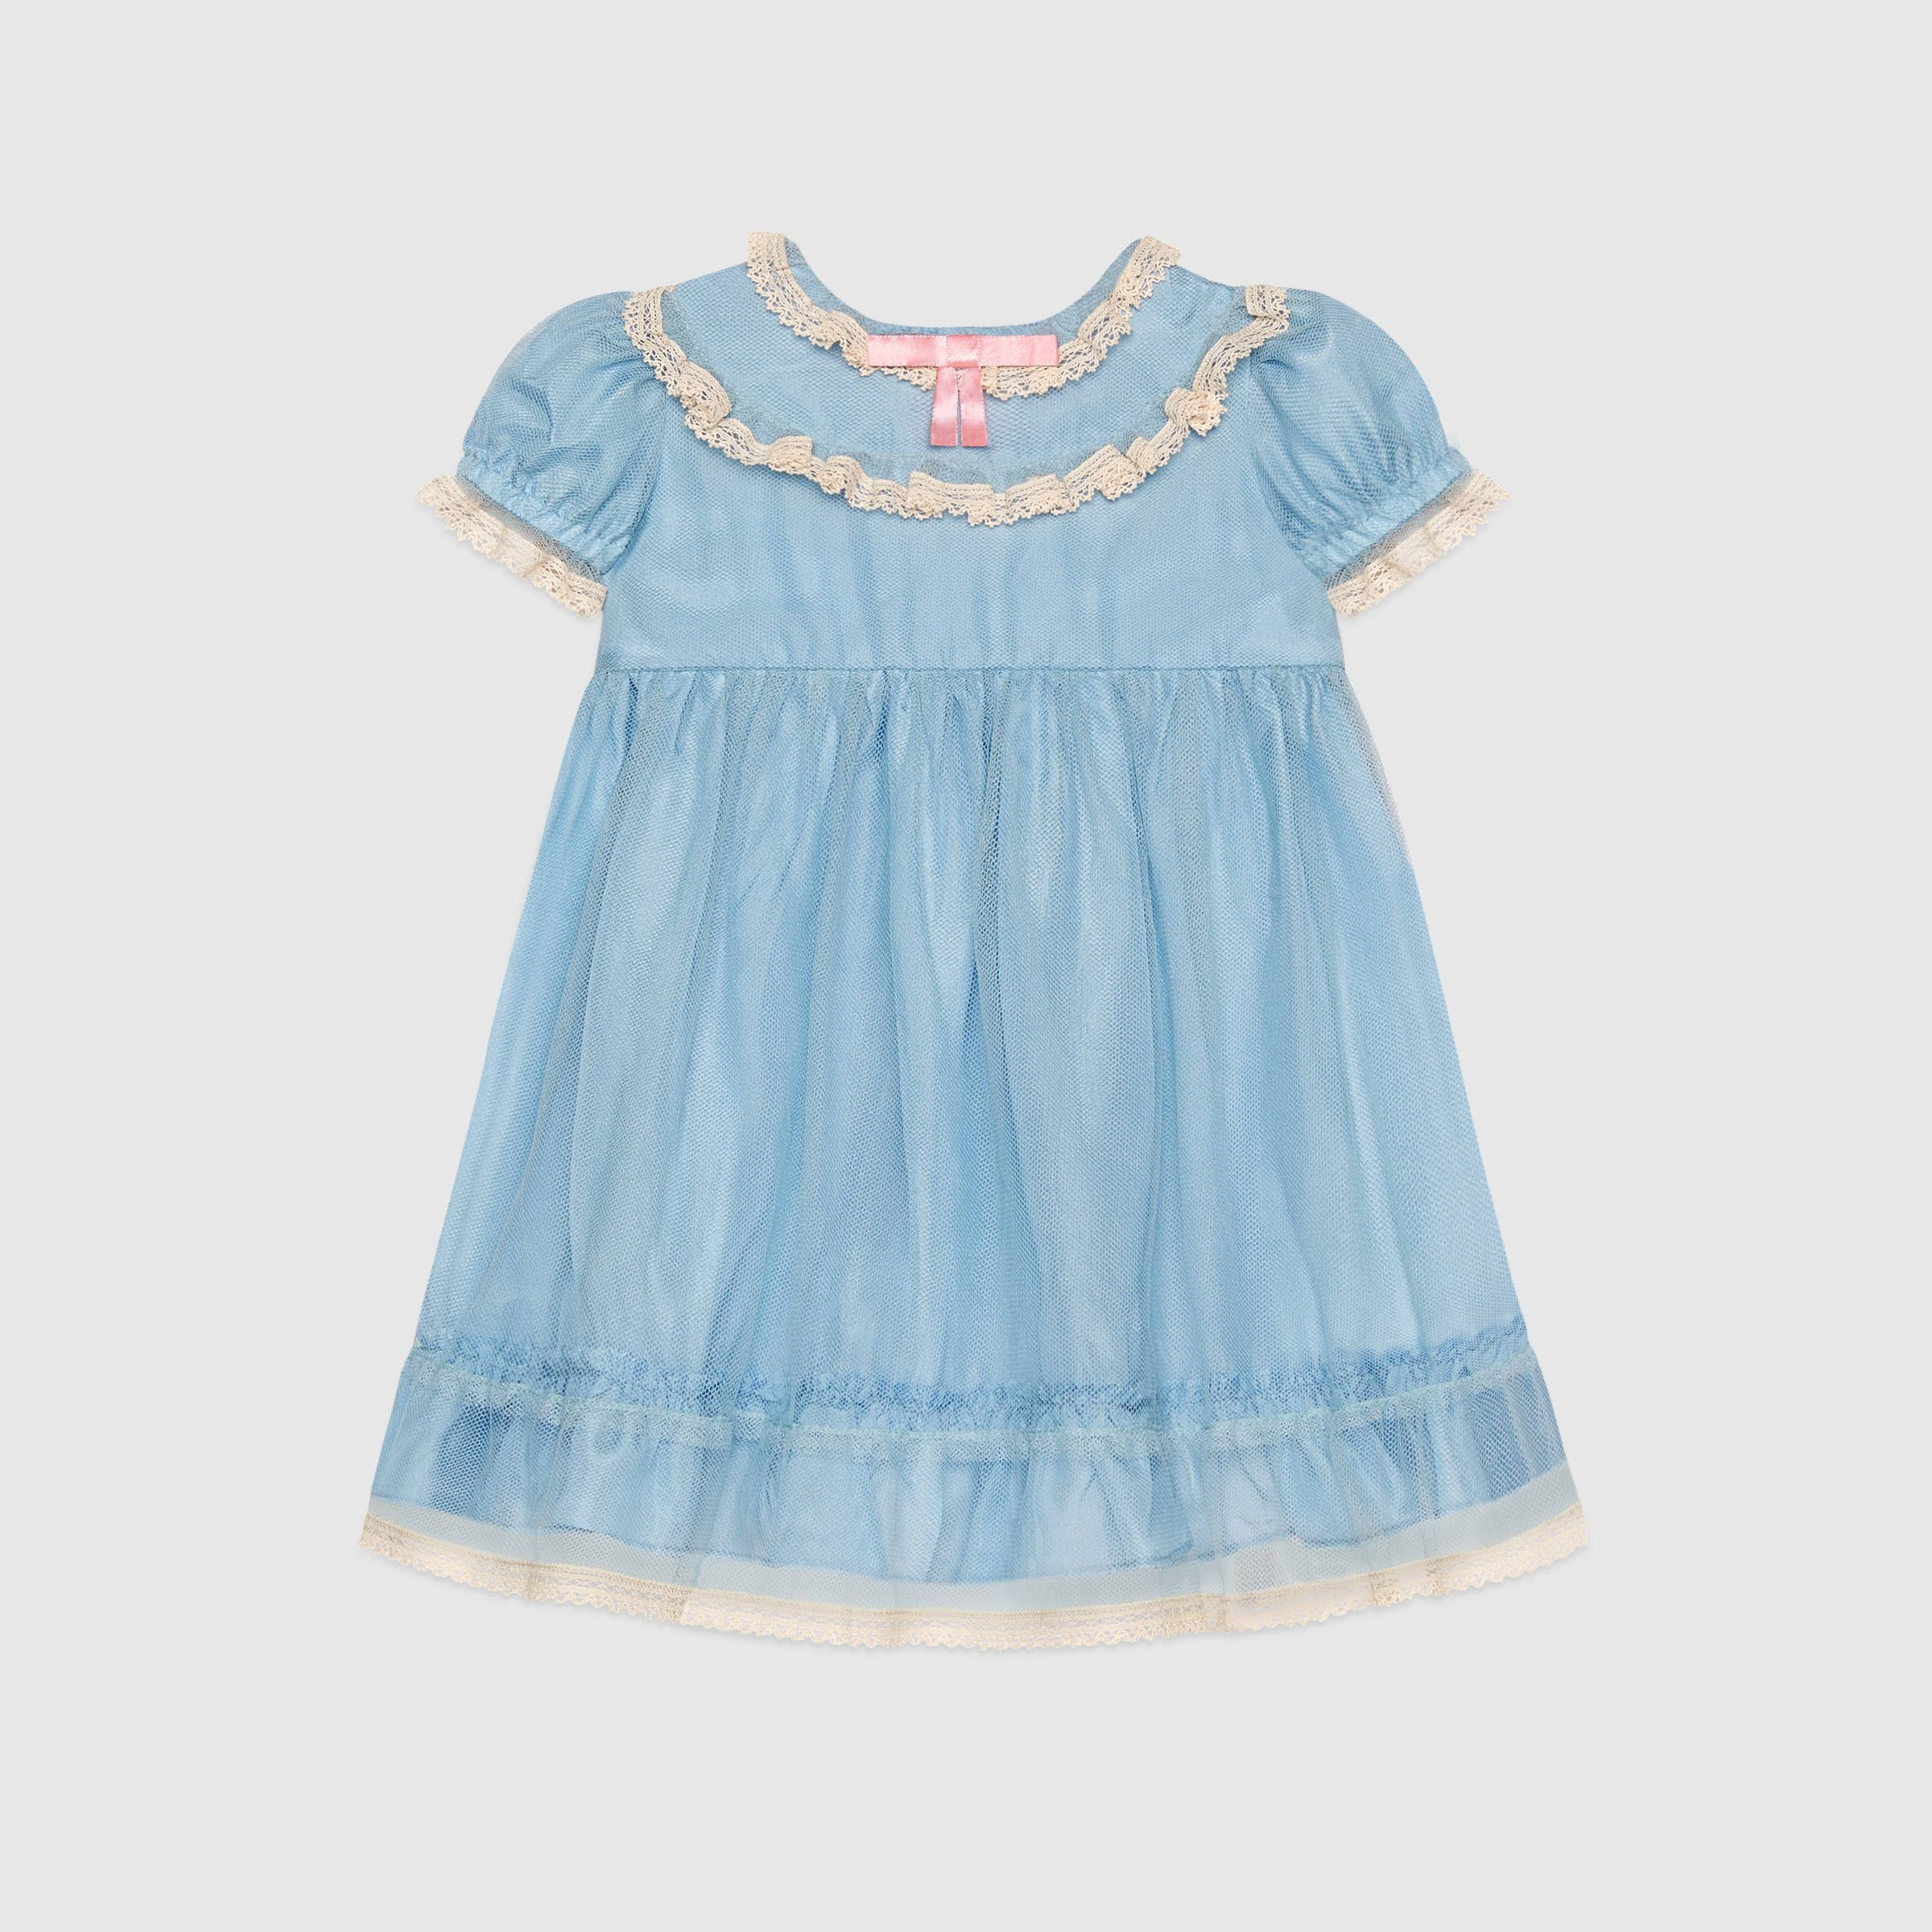 Baby silk and tulle dress Lex & Charm Reveal Gifts